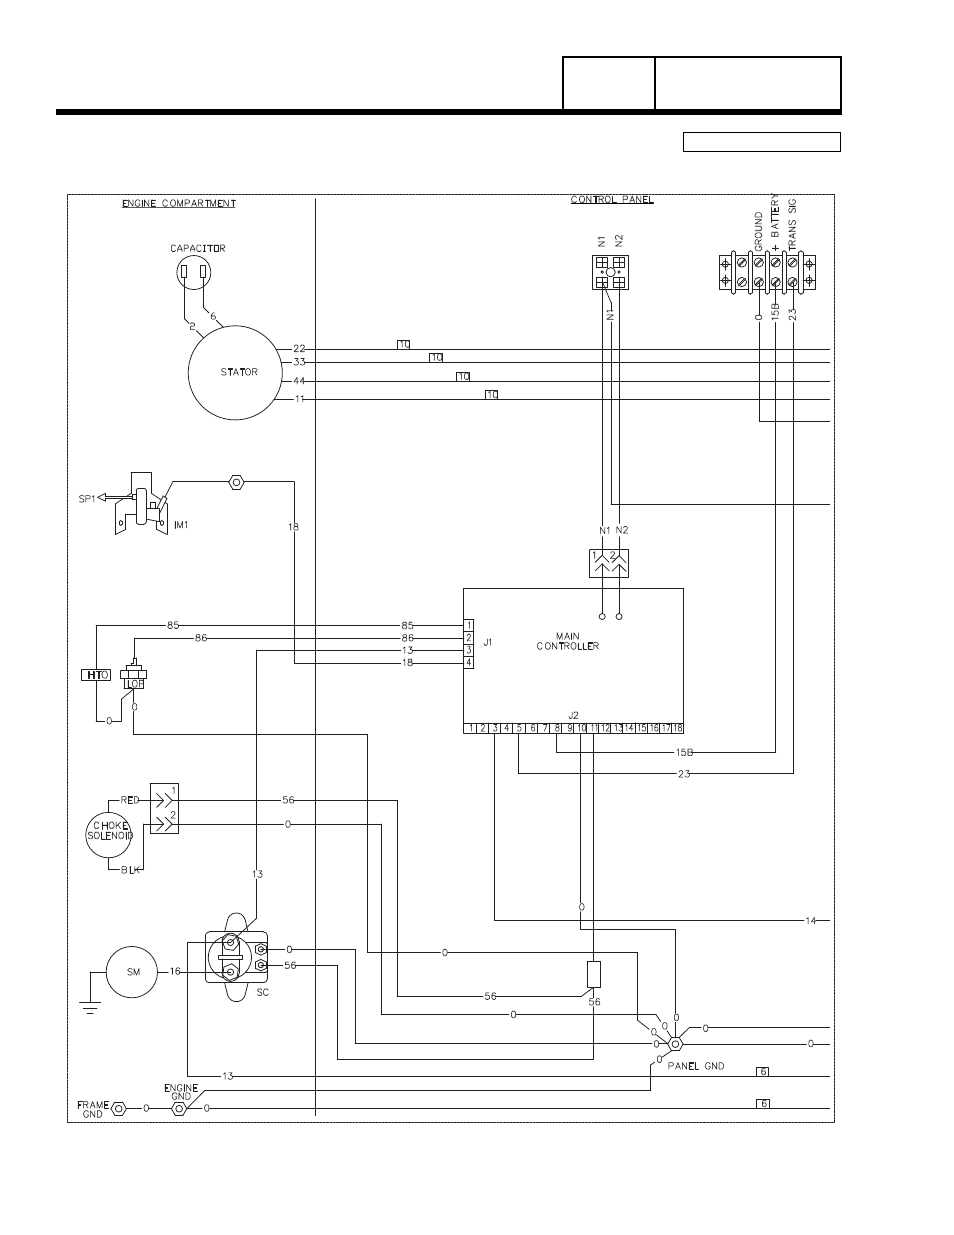 Kw Hls Wiring Diagram Auto Electrical Cub Cadet Onan Engine Cckb Ms 4006j